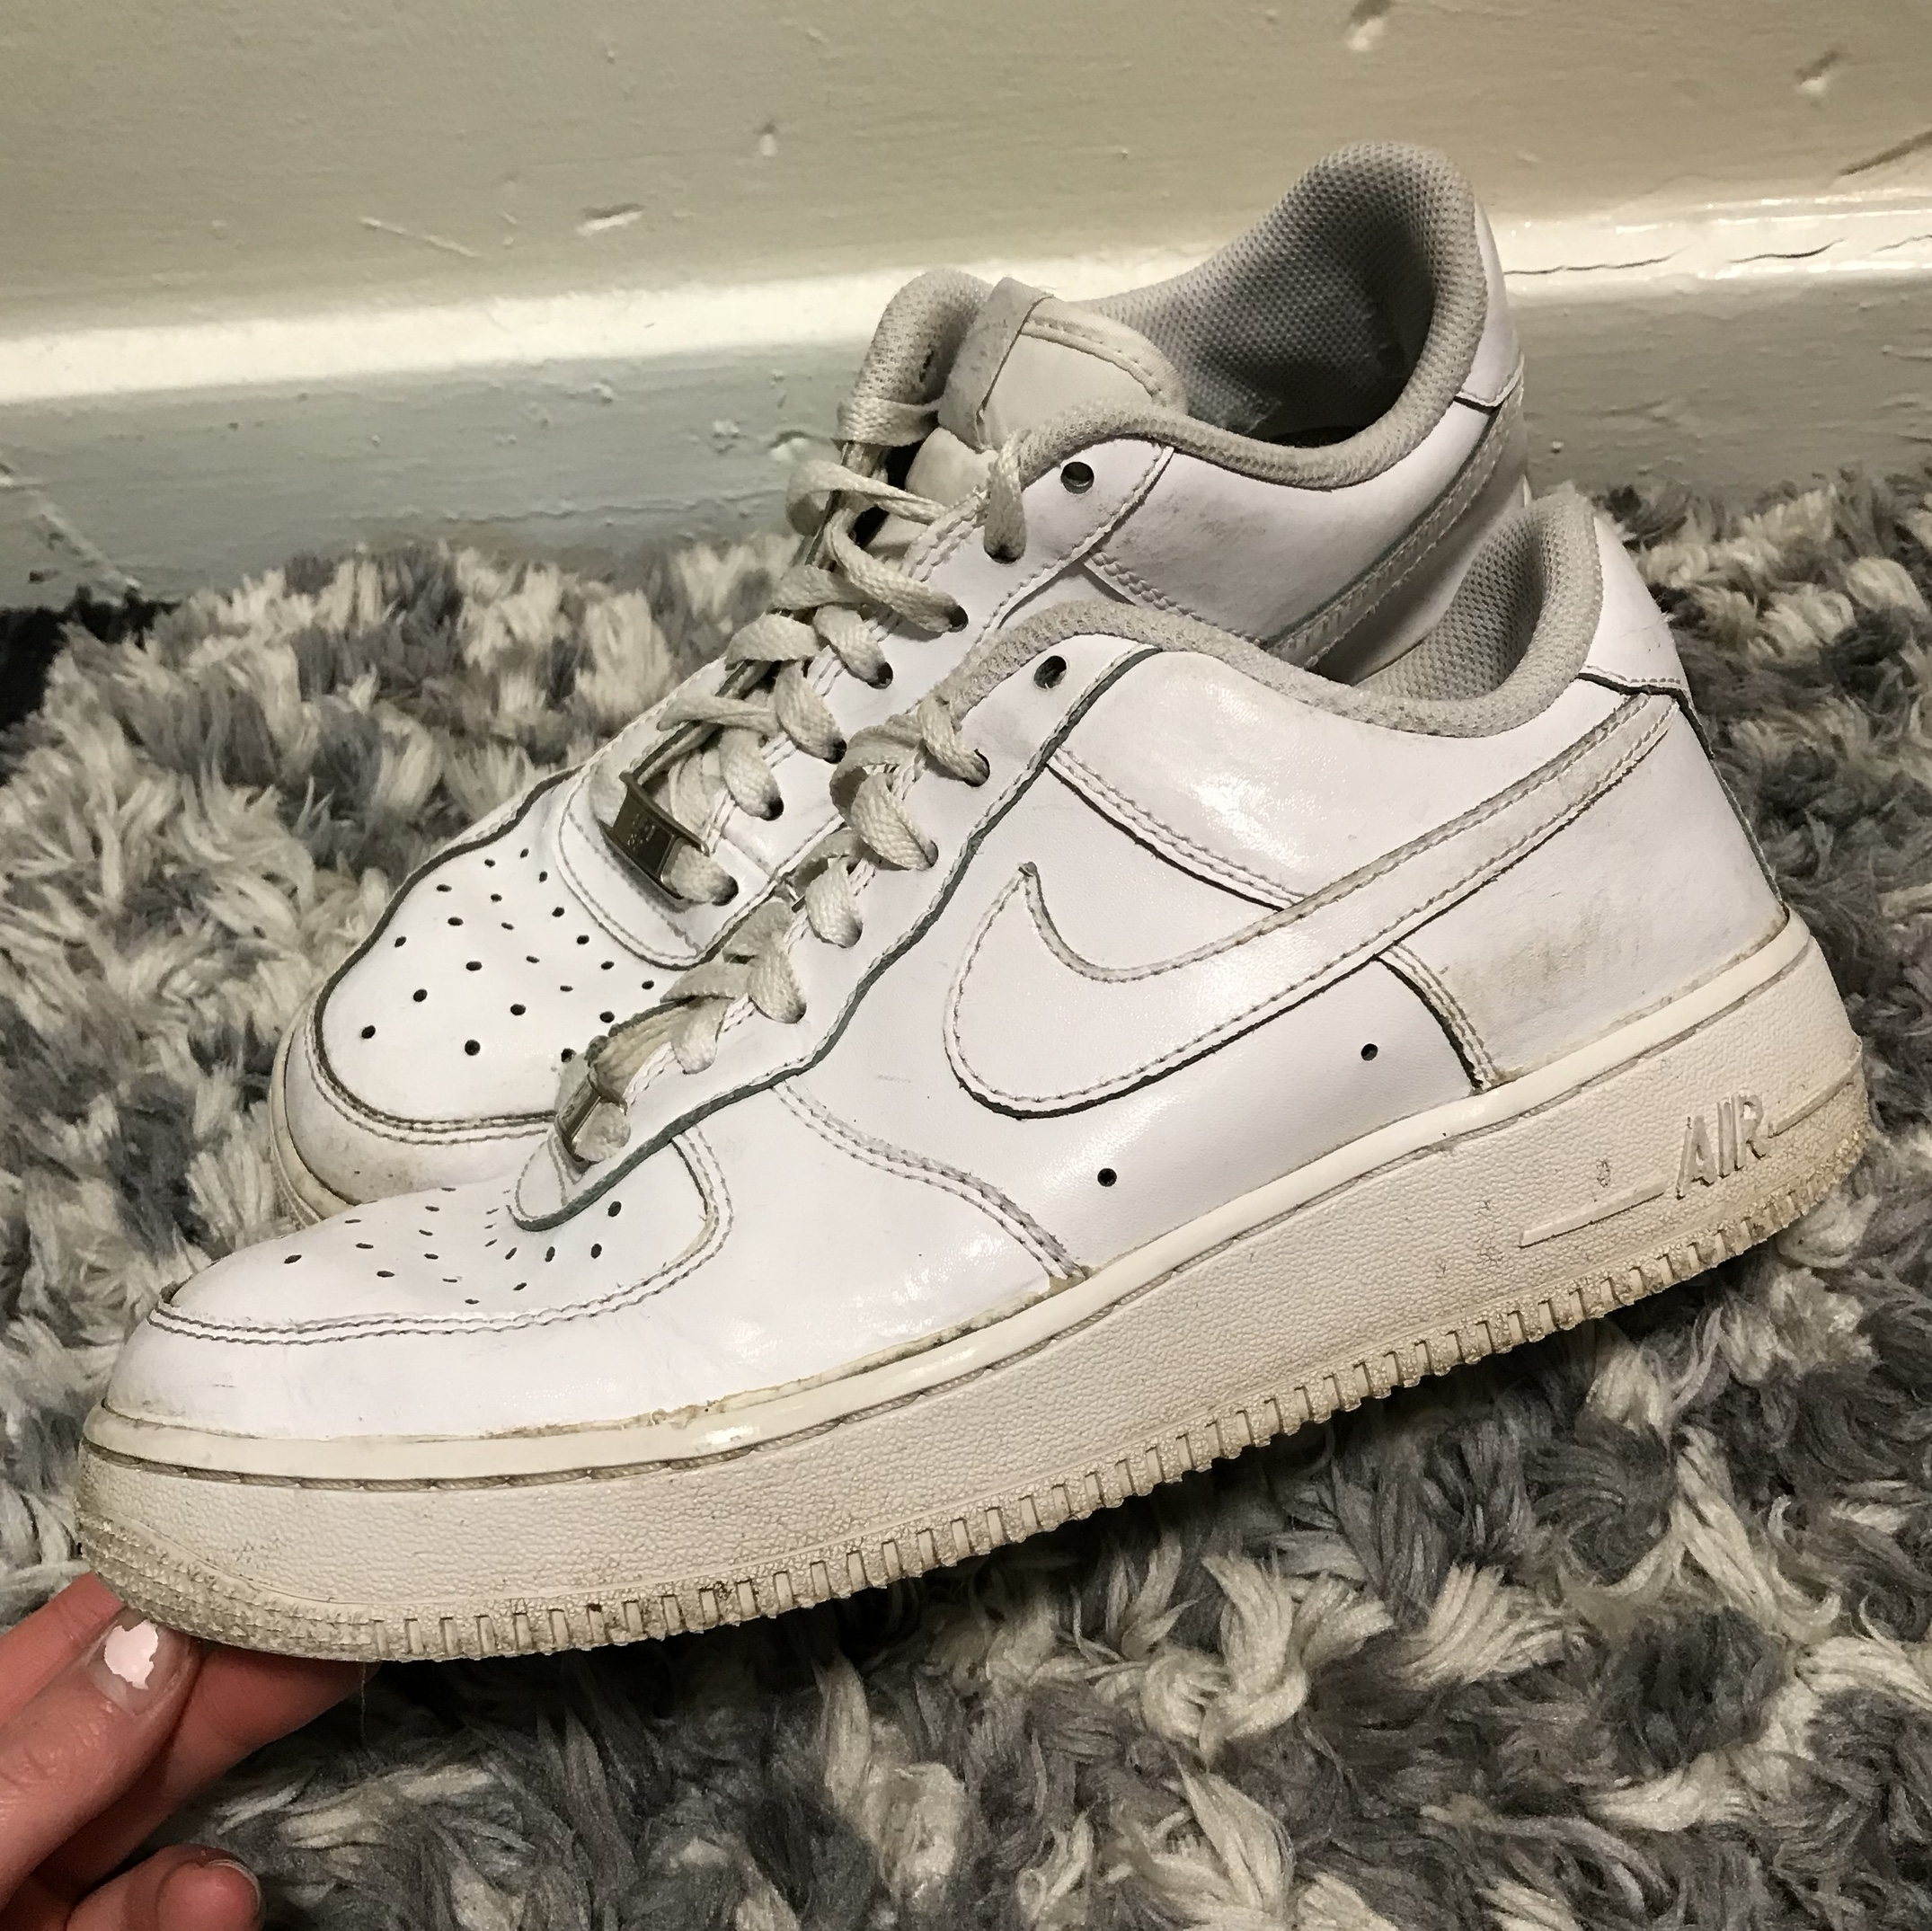 White Nike Air Force 1 (well worn) Size 5.5 £30 Depop